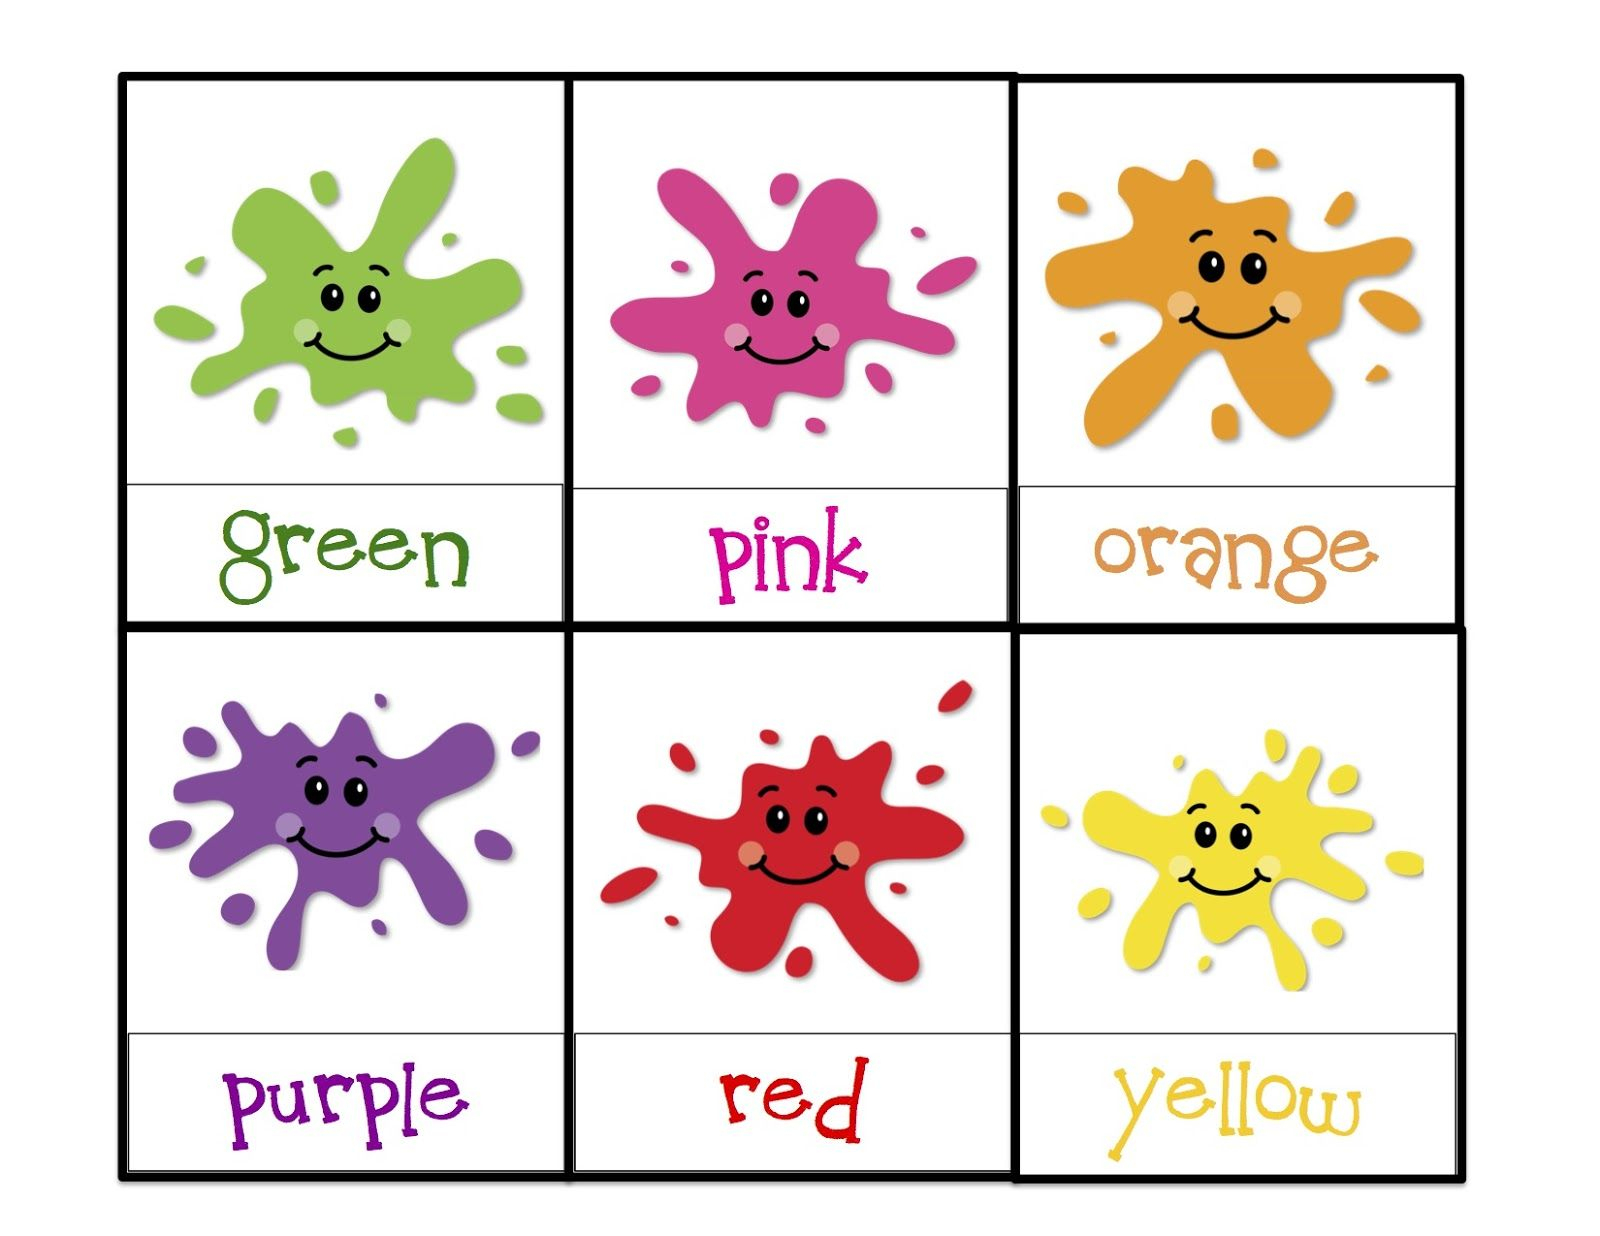 Learning Colors Printable | Children's Activities | Pinterest - Toddler Learning Activities Printable Free